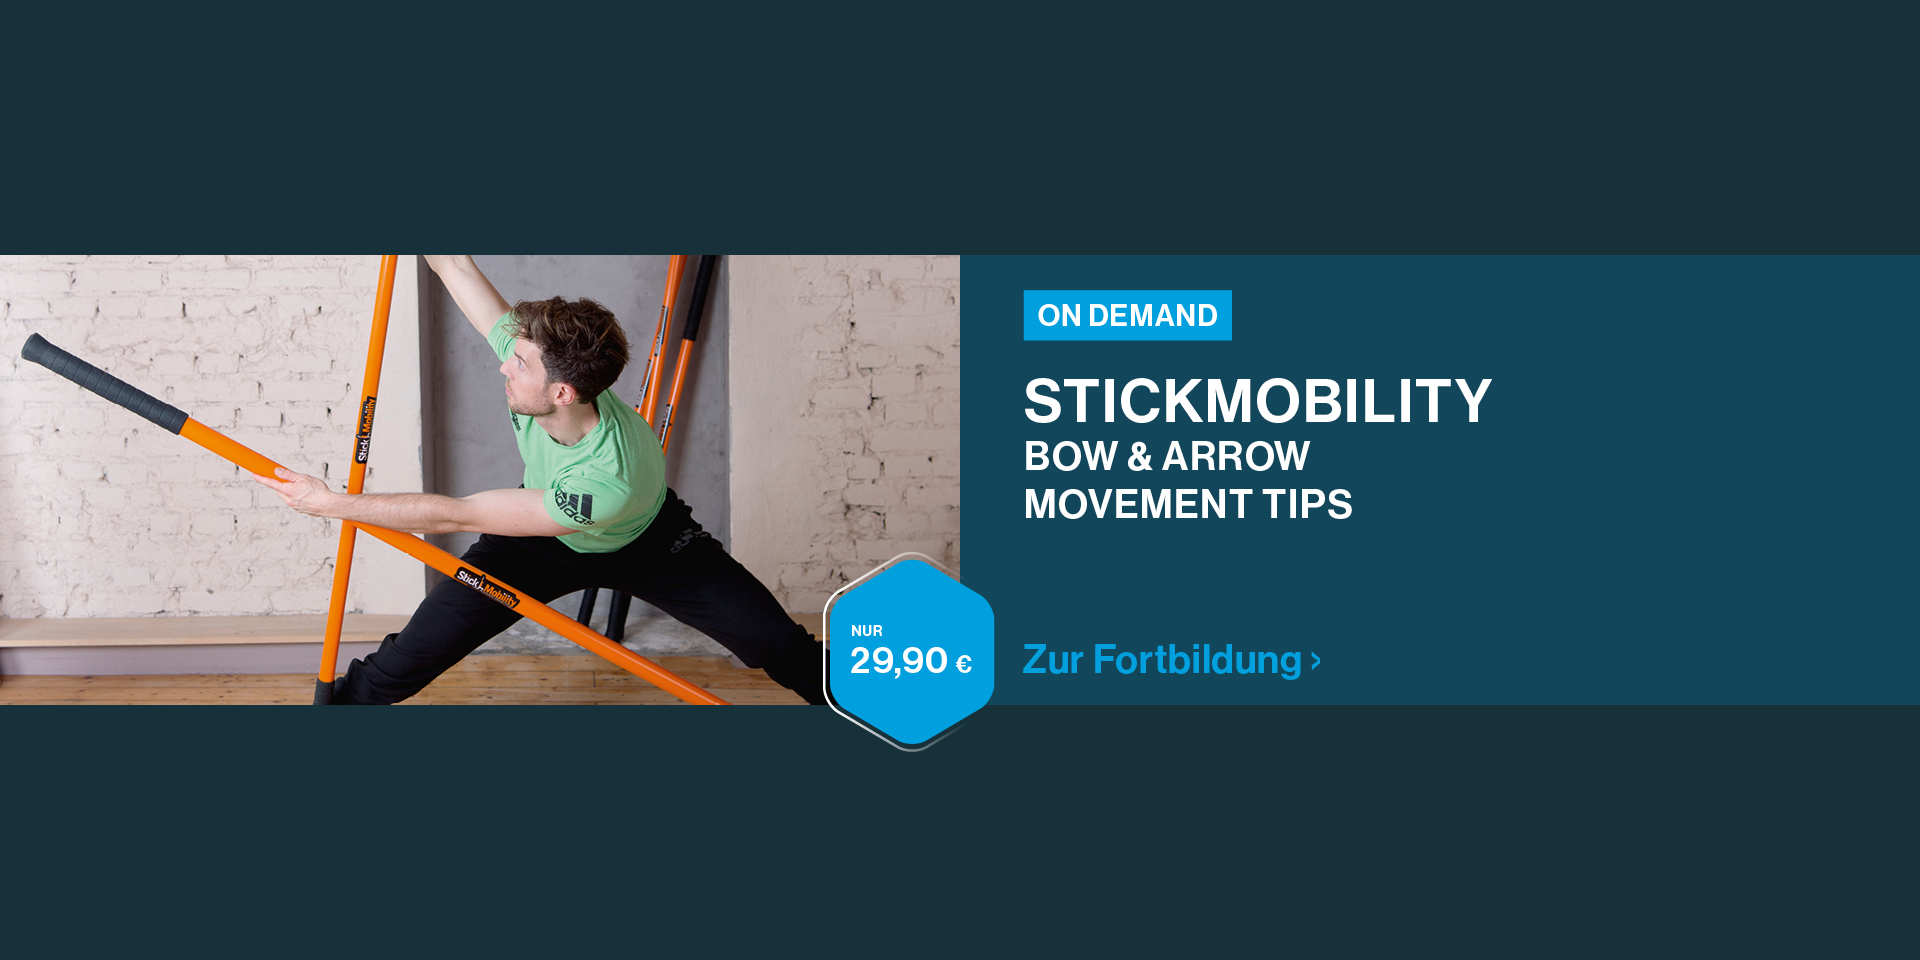 Stick Mobility Bow & Arrow Movement Tips